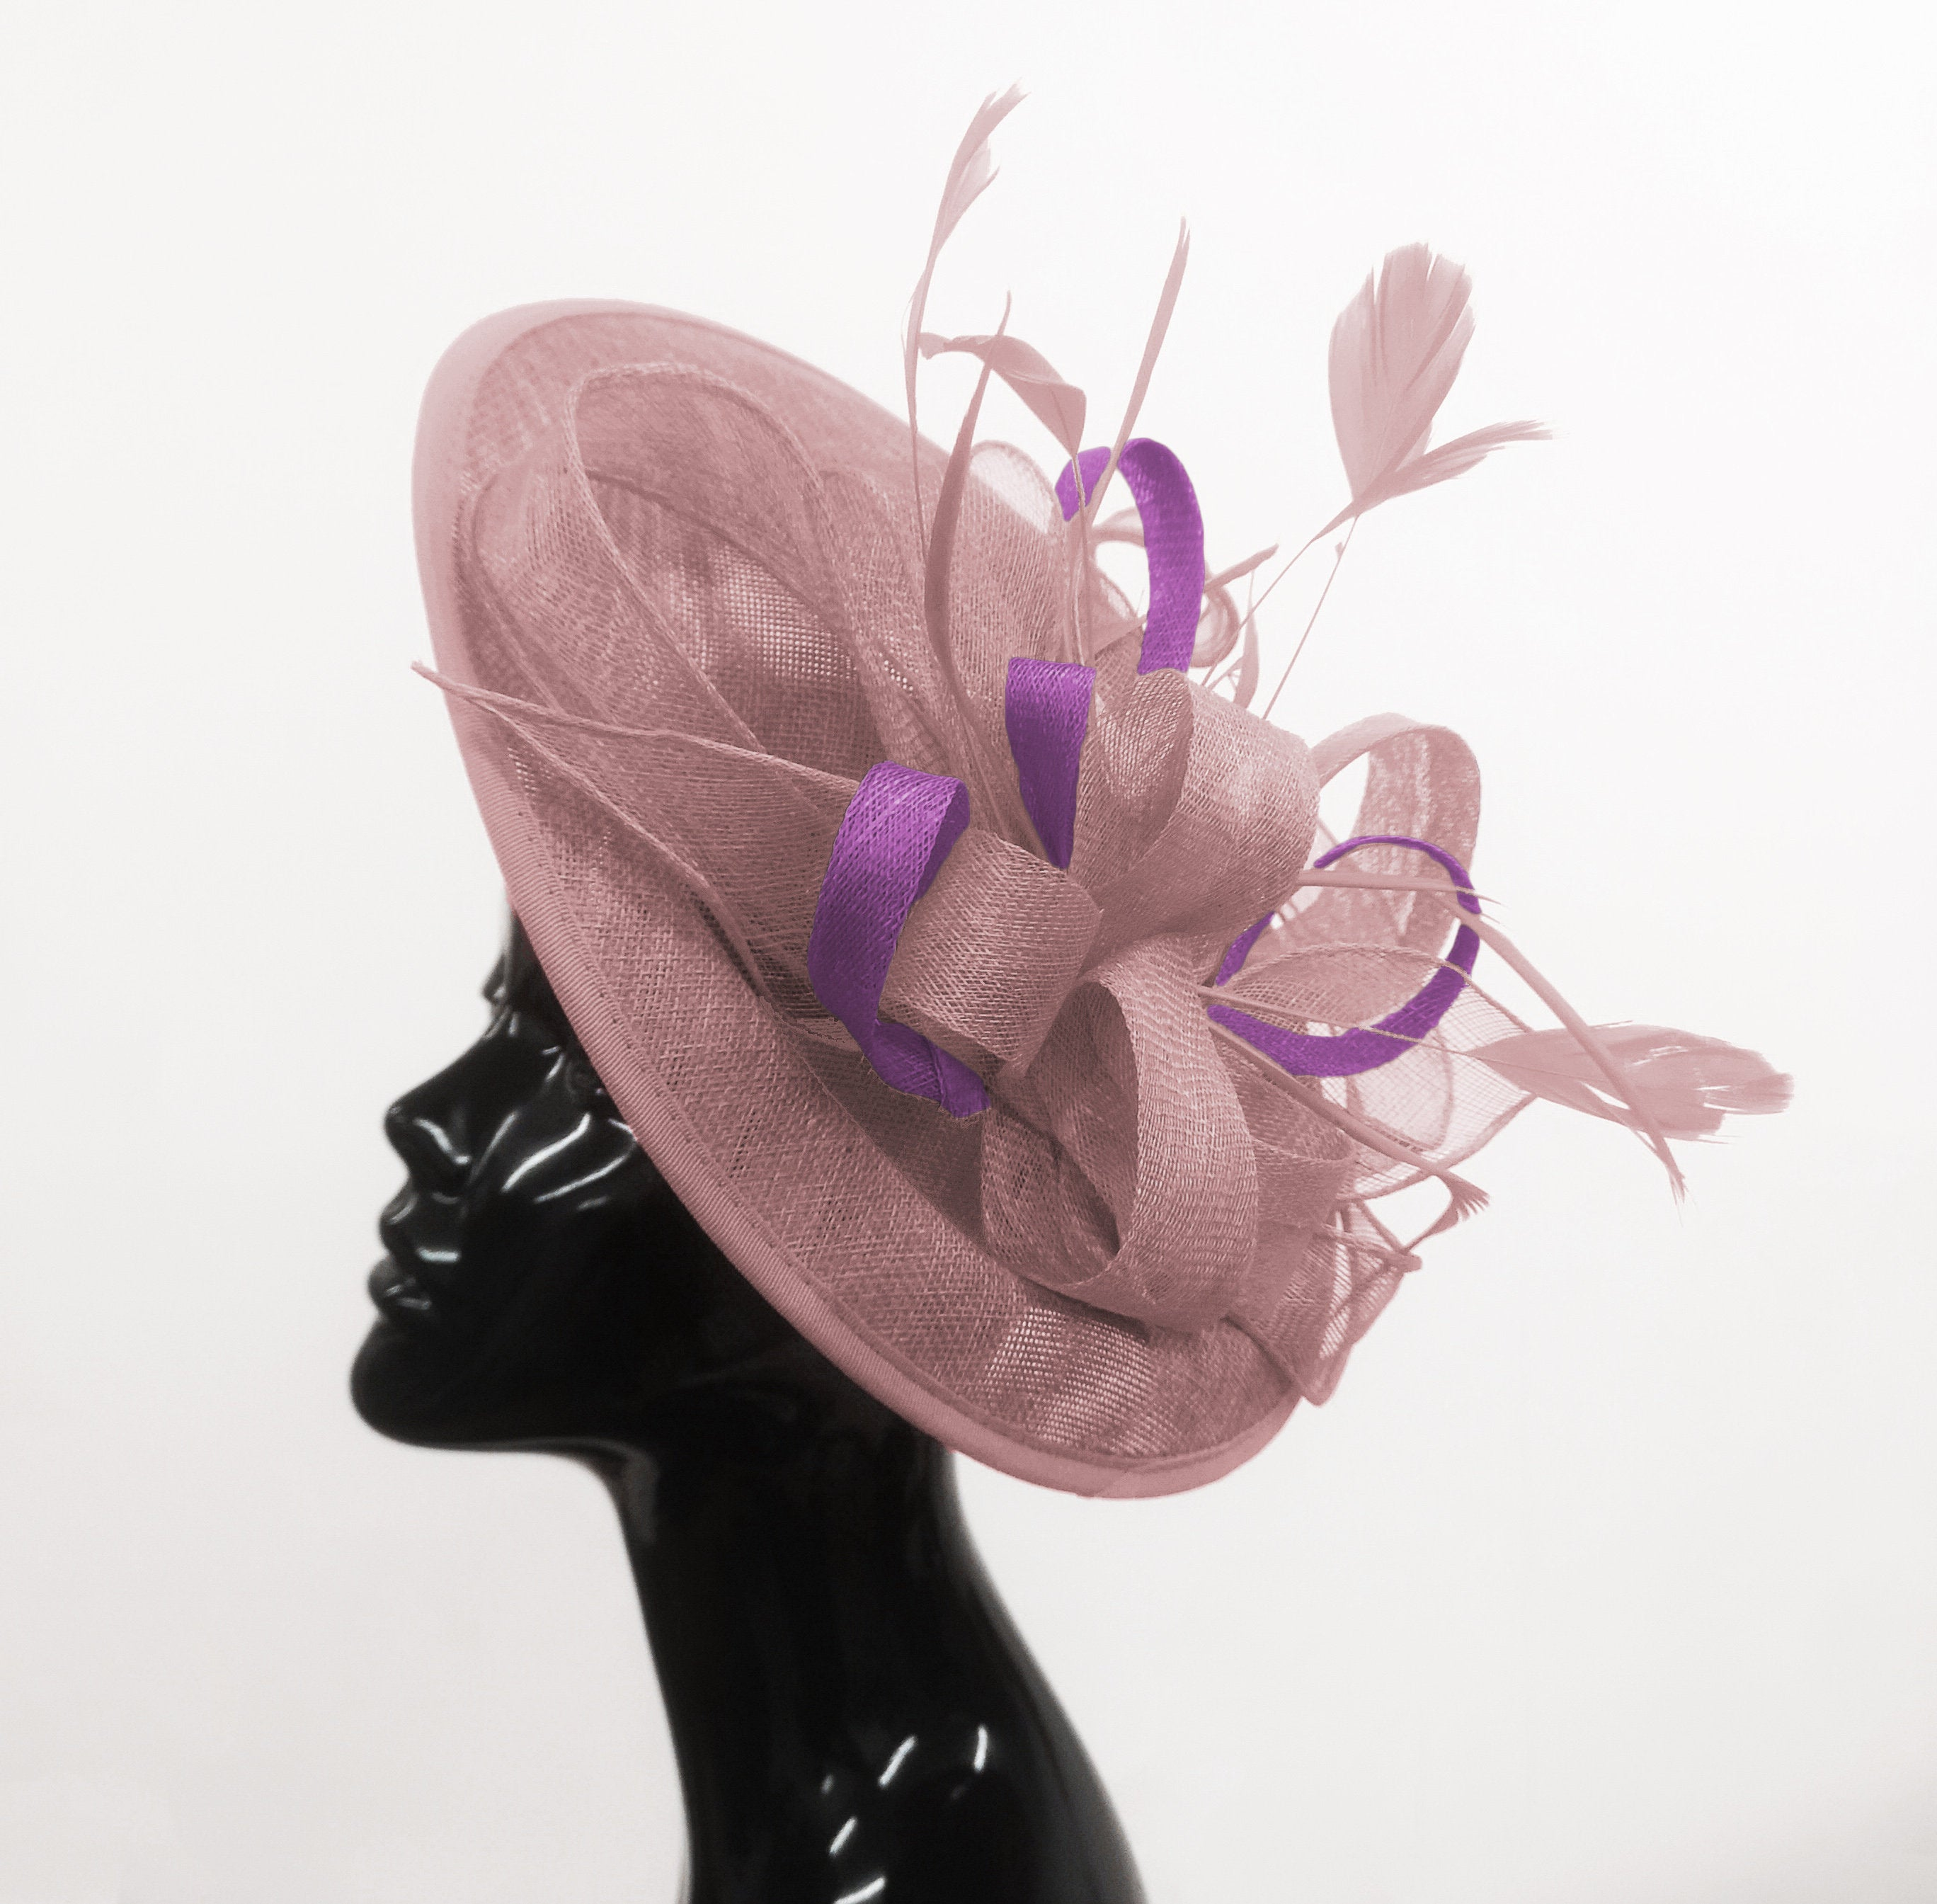 Caprilite Big Saucer Sinamay Dusty Pink & Cadbury Purple Mixed Colour Fascinator On Headband